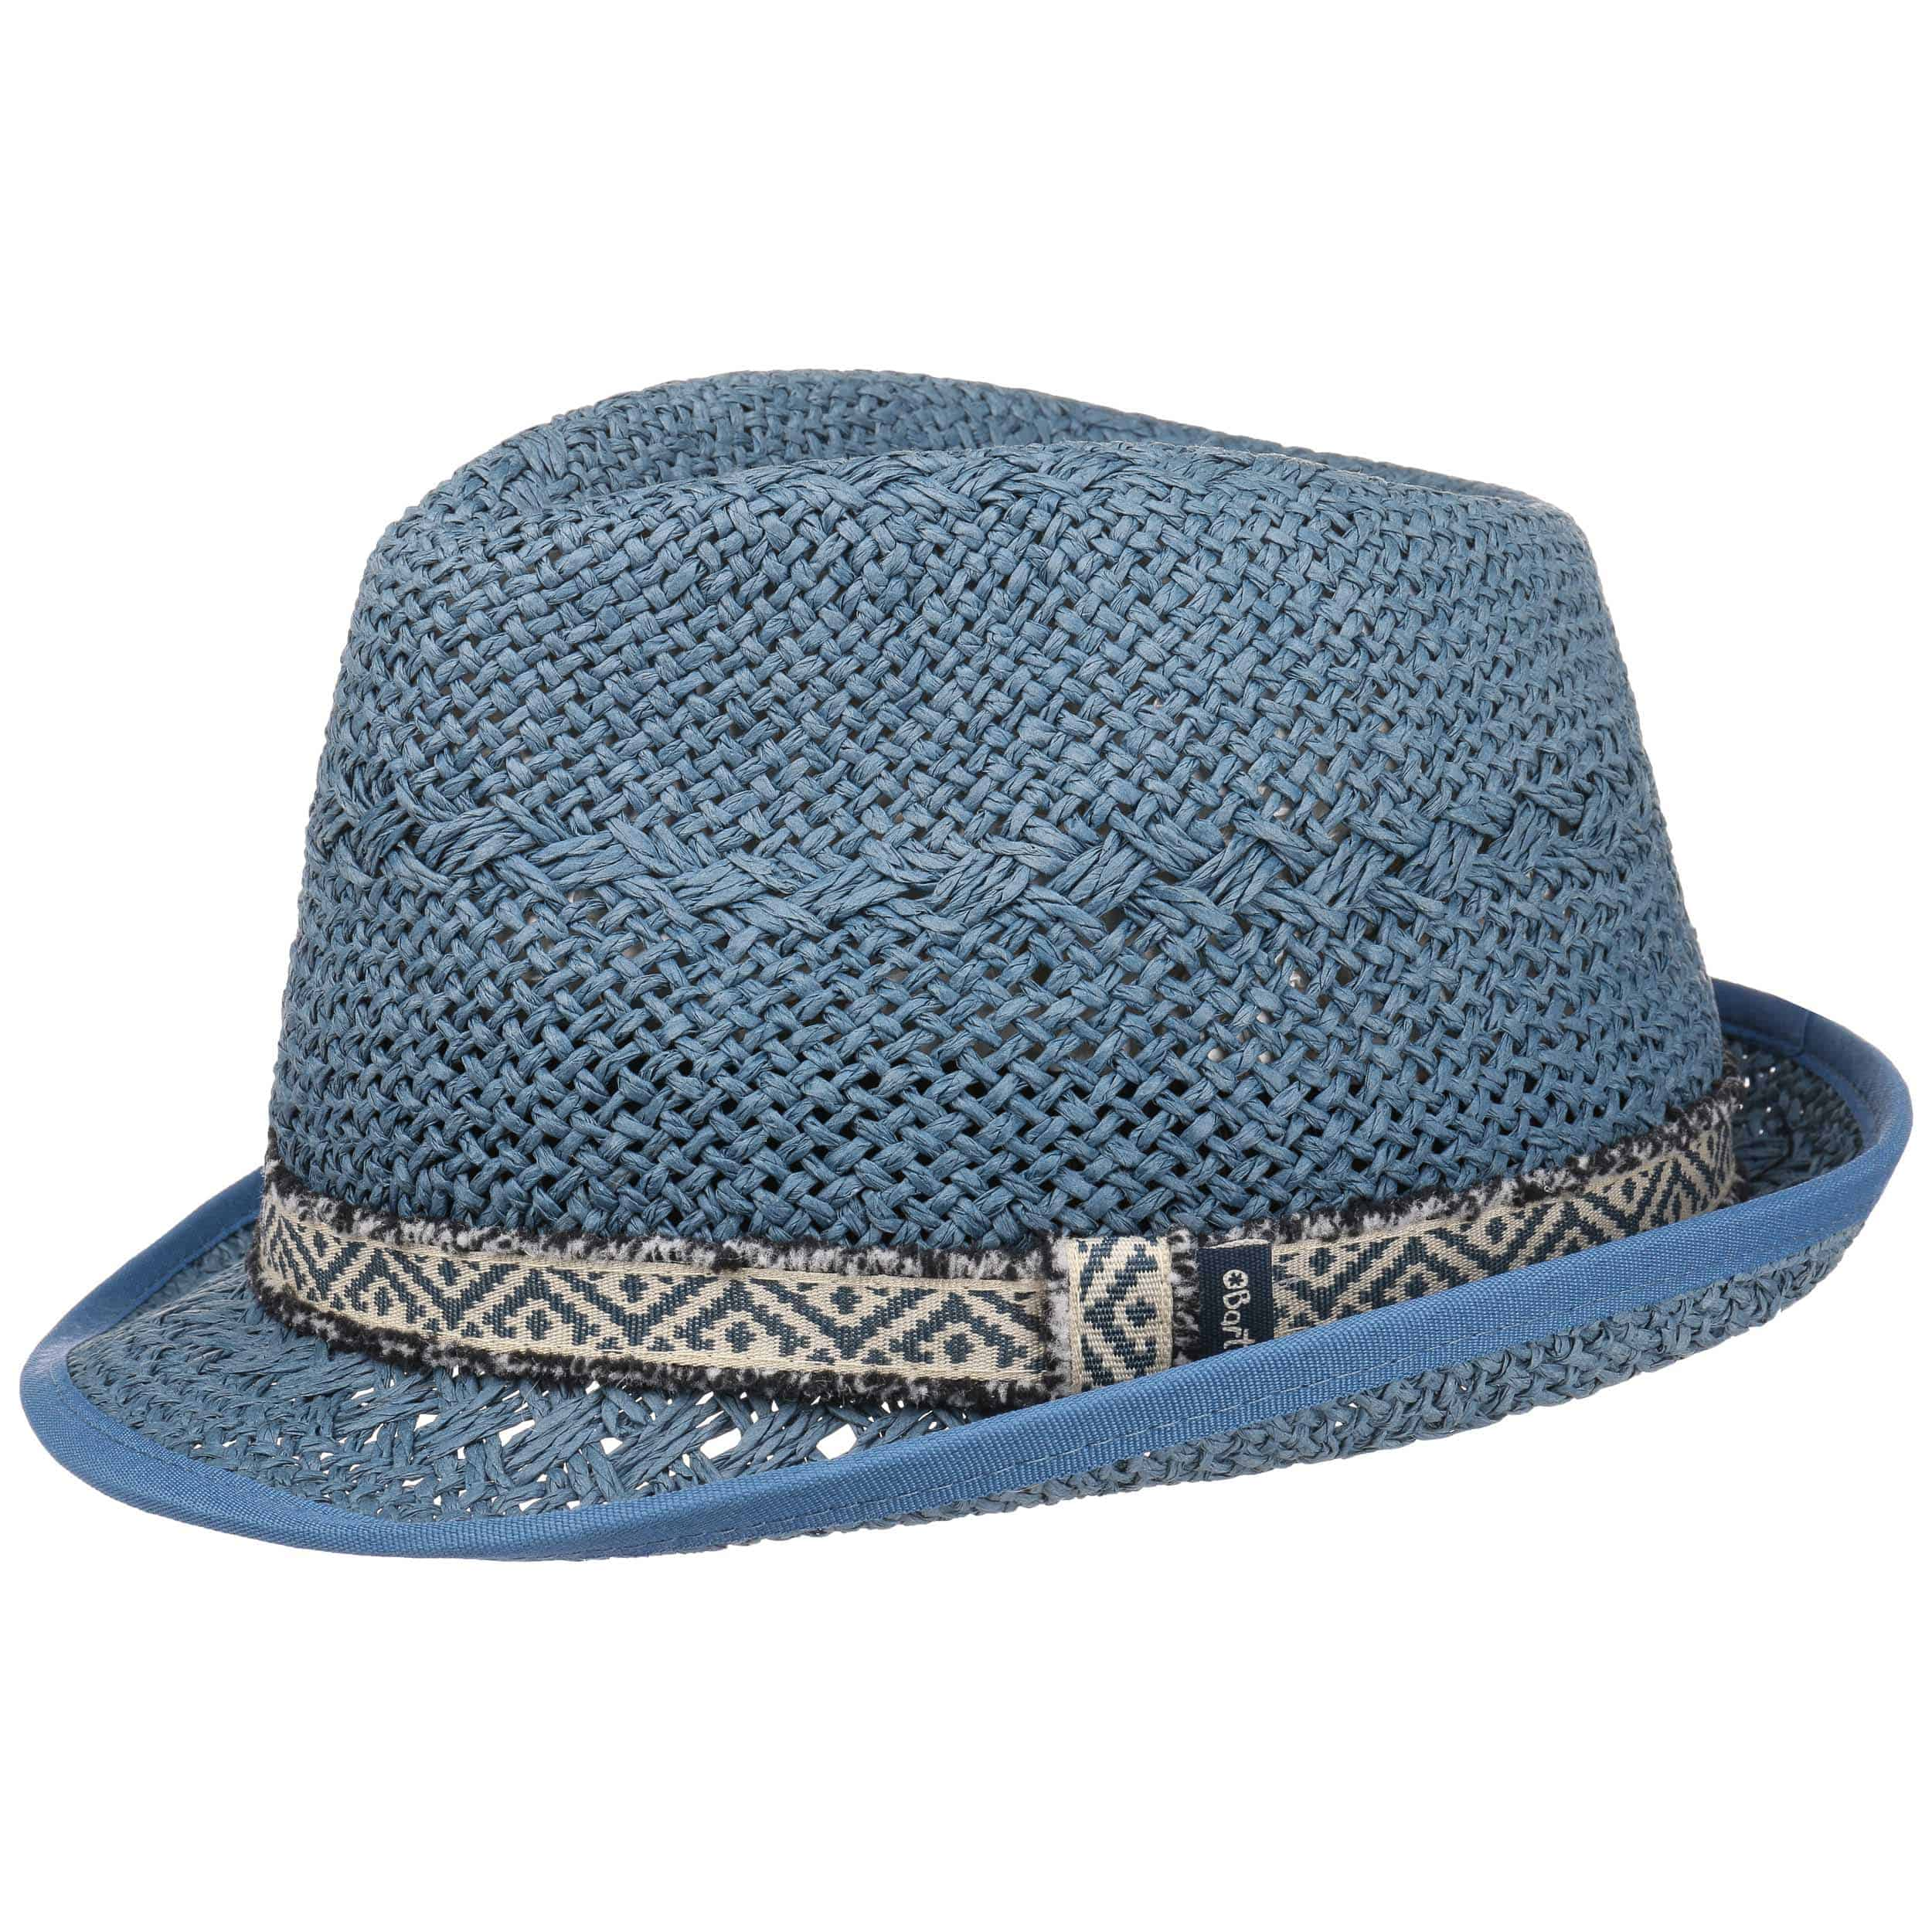 cb2447f73ca ... Baboon Kids Trilby Hat by Barts - blue 4 ...